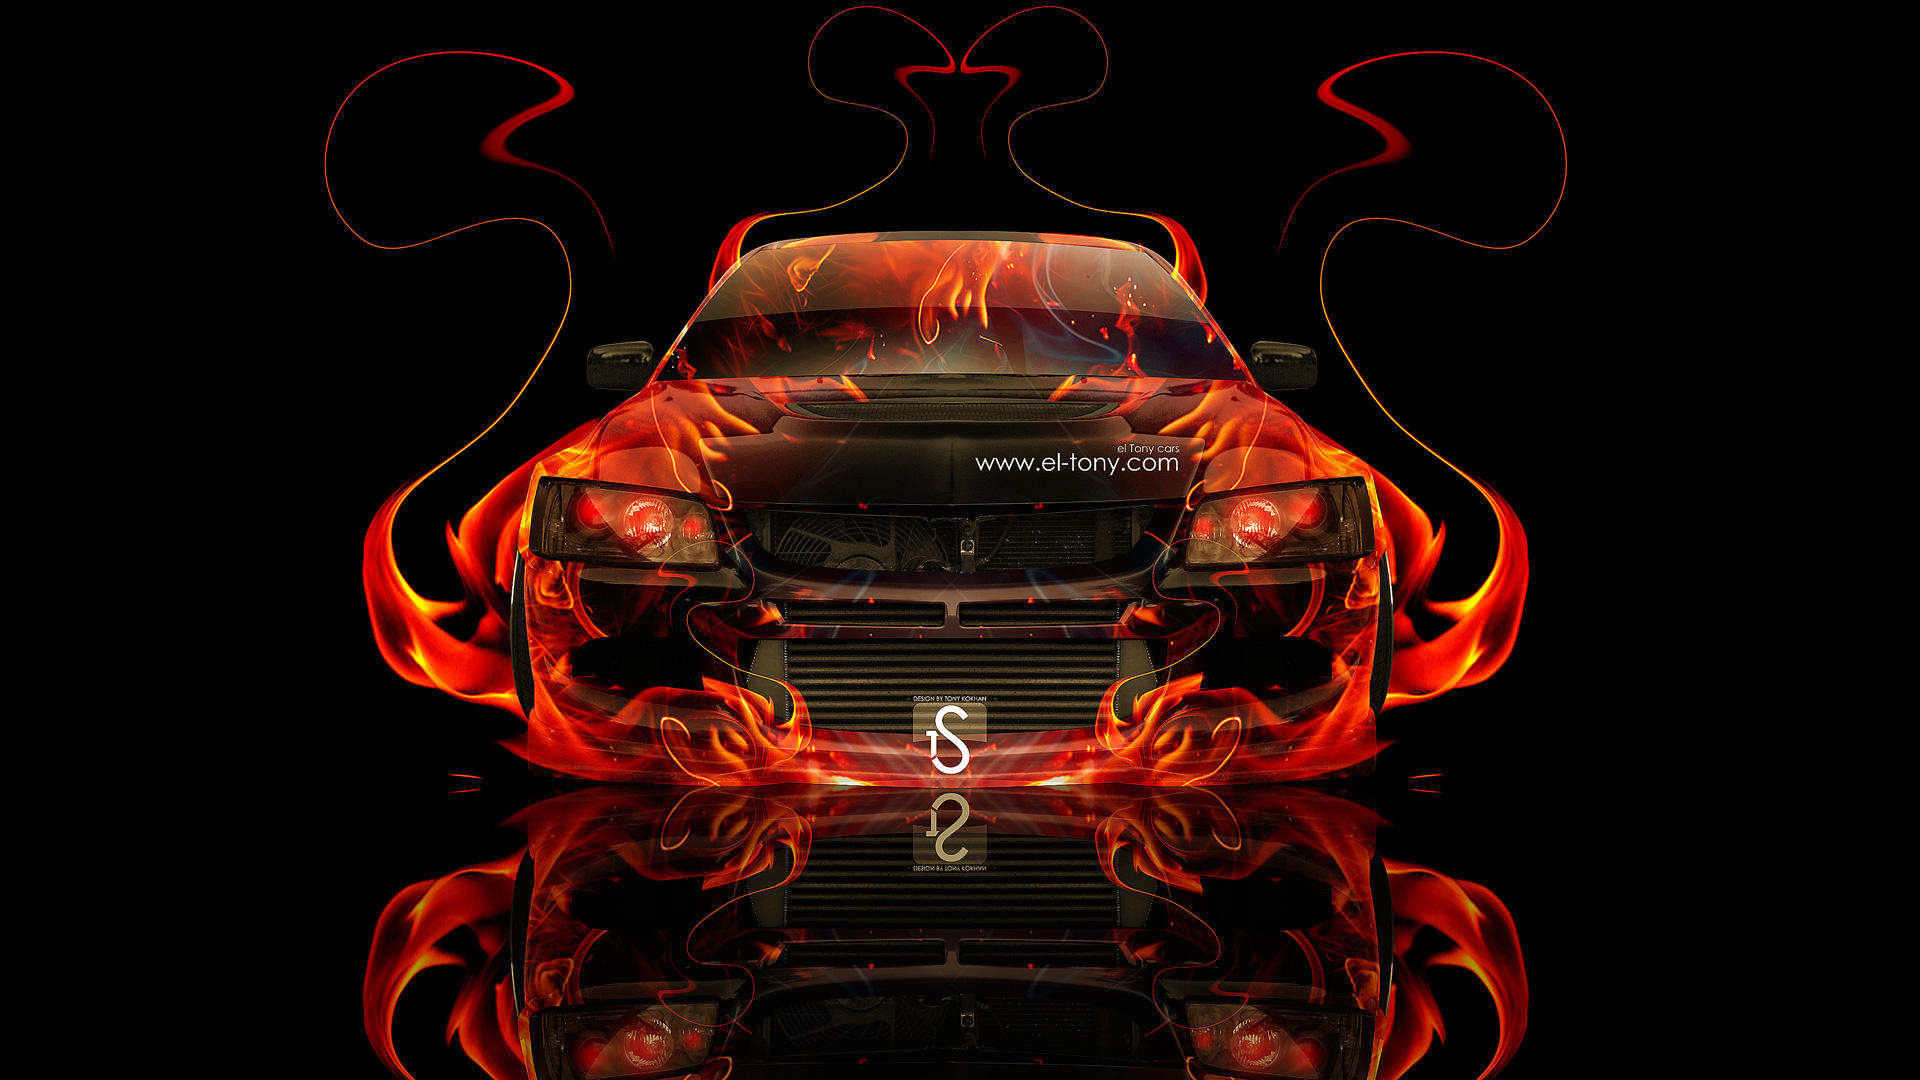 Mitsubishi Lancer Evolution 8 JDM Fire Abstract Car 2013 .